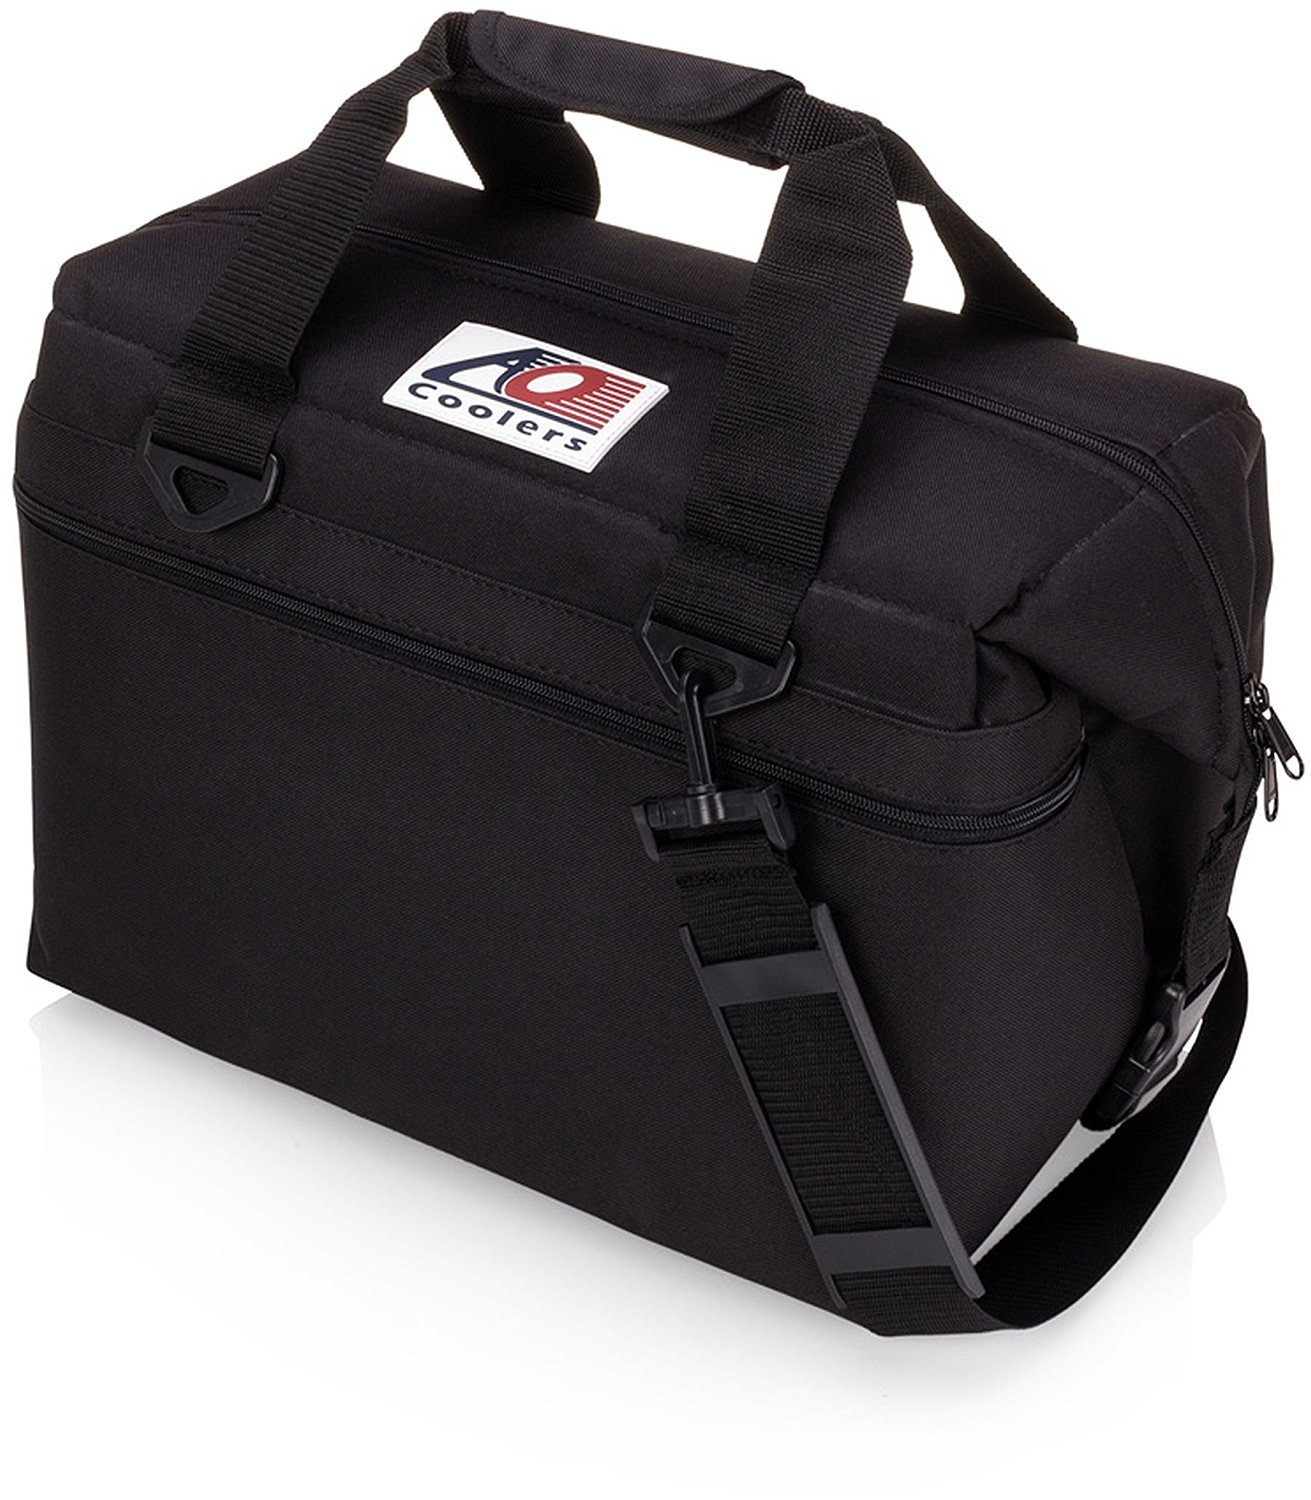 AO Coolers Canvas Soft Cooler with High-Density Insulation, Black, 36-Can